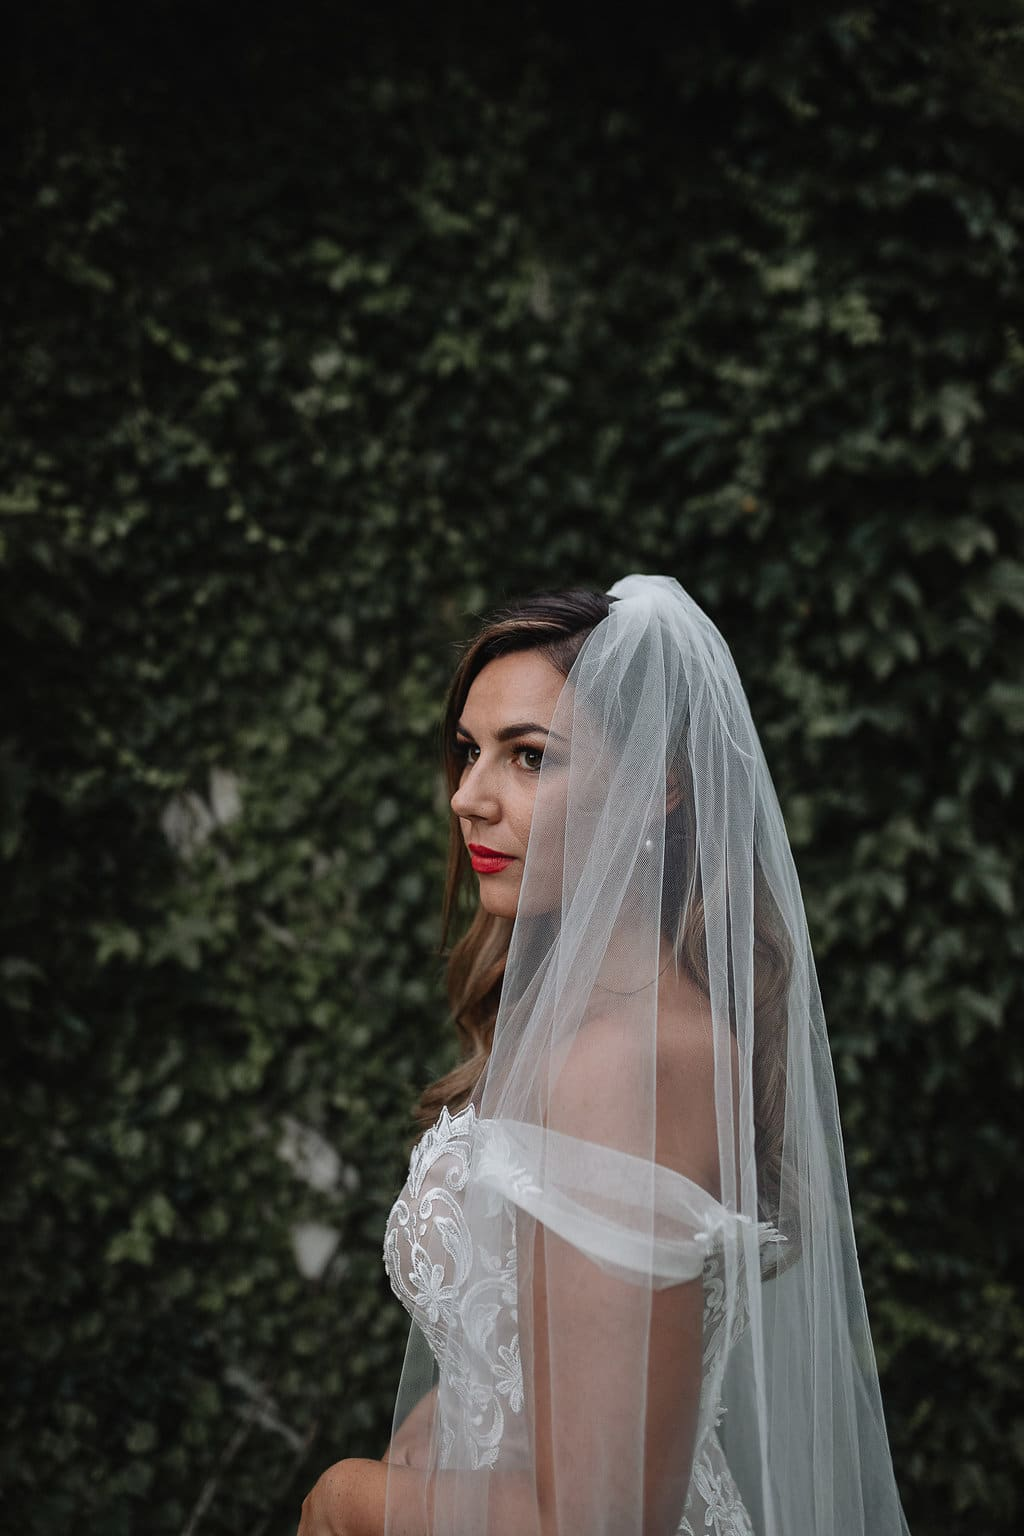 Real Weddings | Vinka Design | Real Brides Wearing Vinka Gowns | Amber and Rhys - Amber close up top half with veil and off shoulder custom made dress